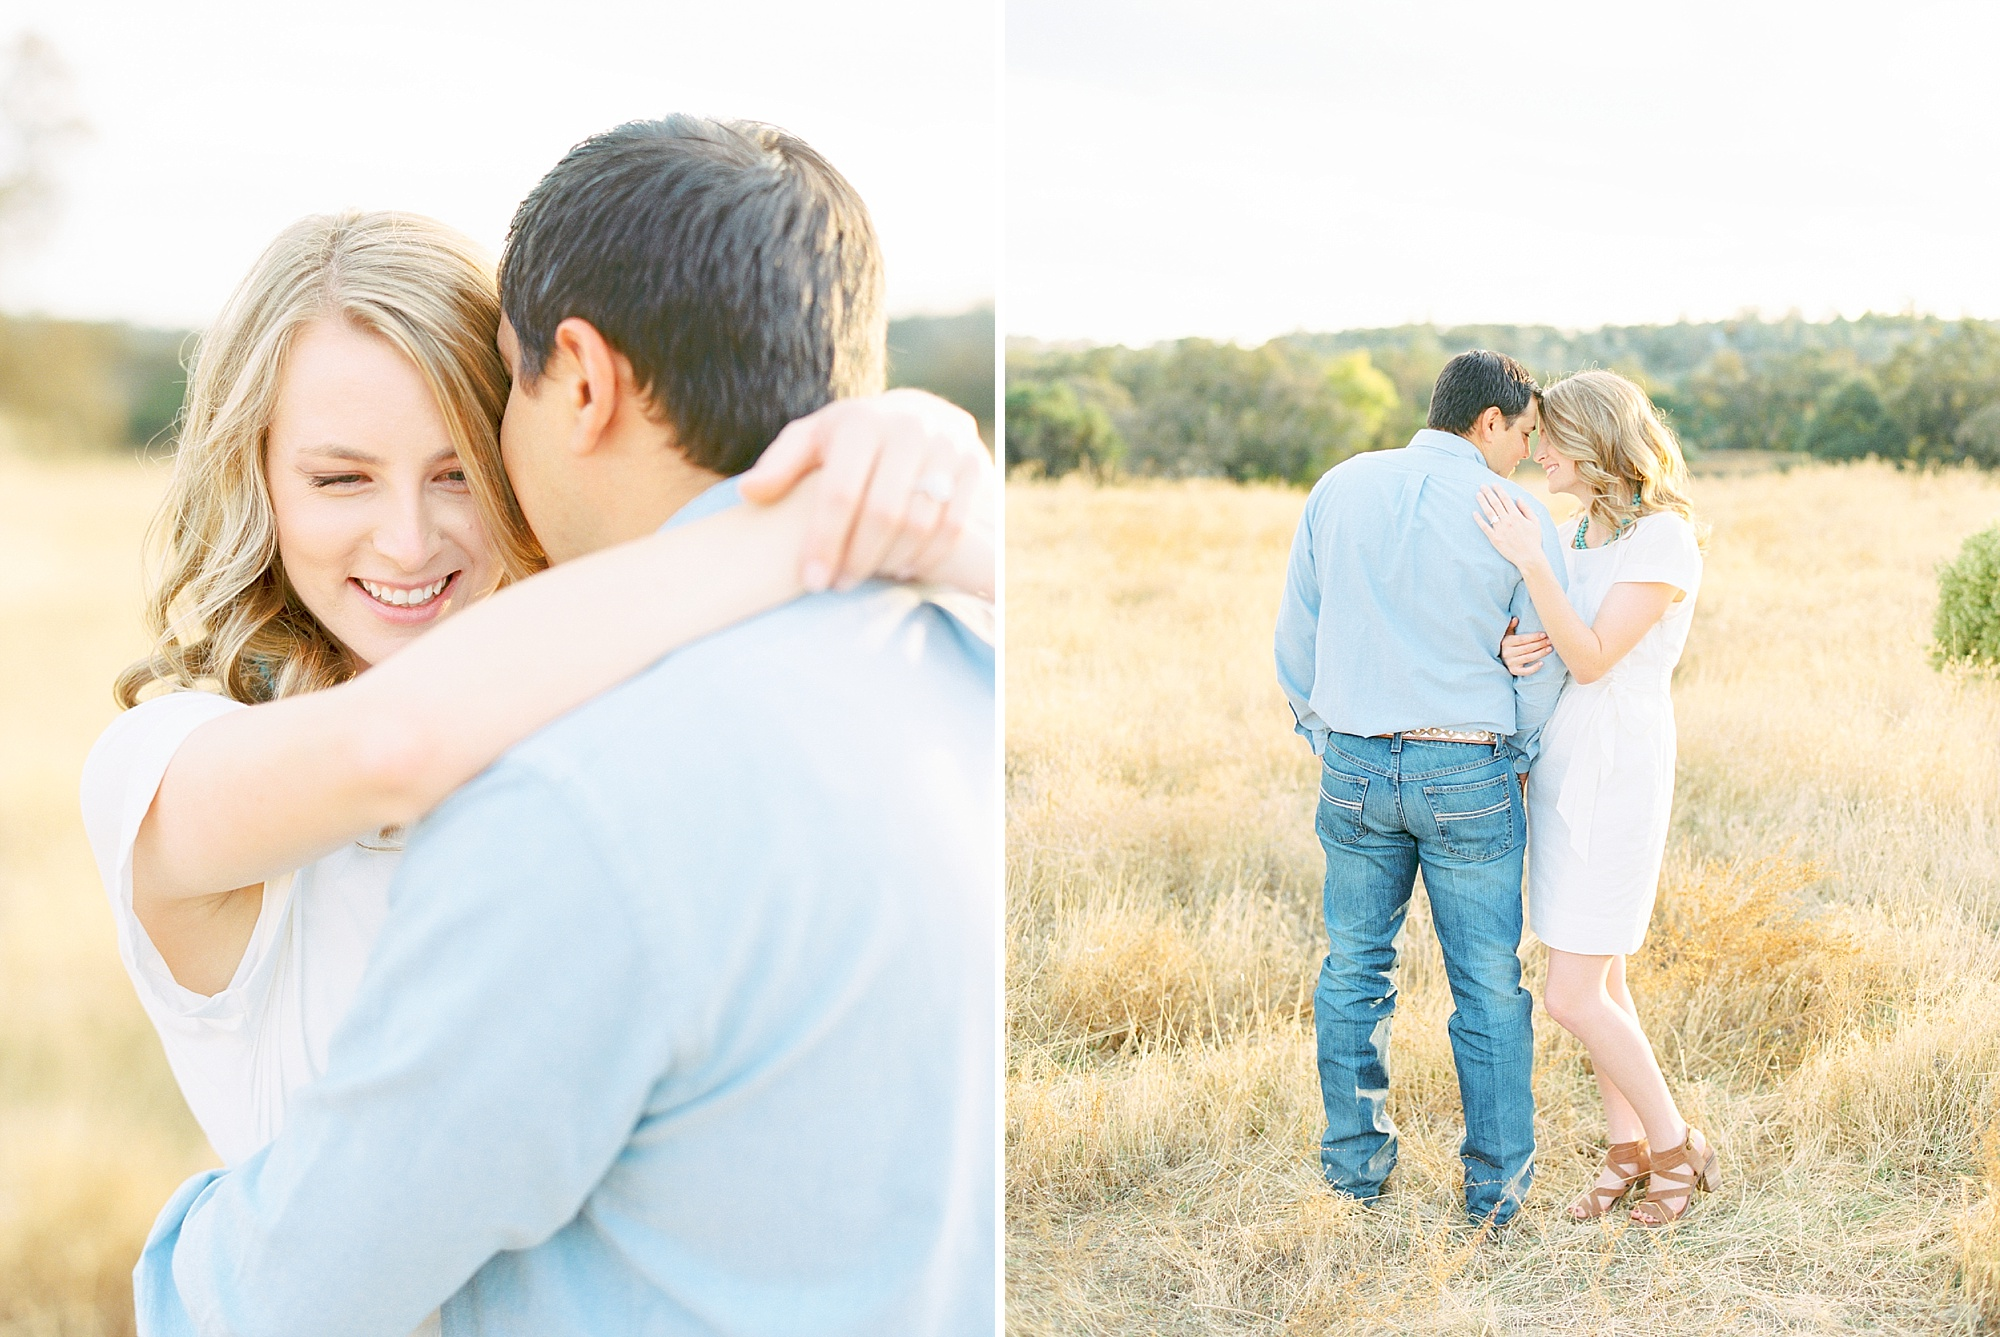 Golden Hills Engagement Session - Film Engagement Session - Ashley Baumgartner - Sacramento Wedding Photography - Stone Barn Ranch Wedding Couple_0006.jpg